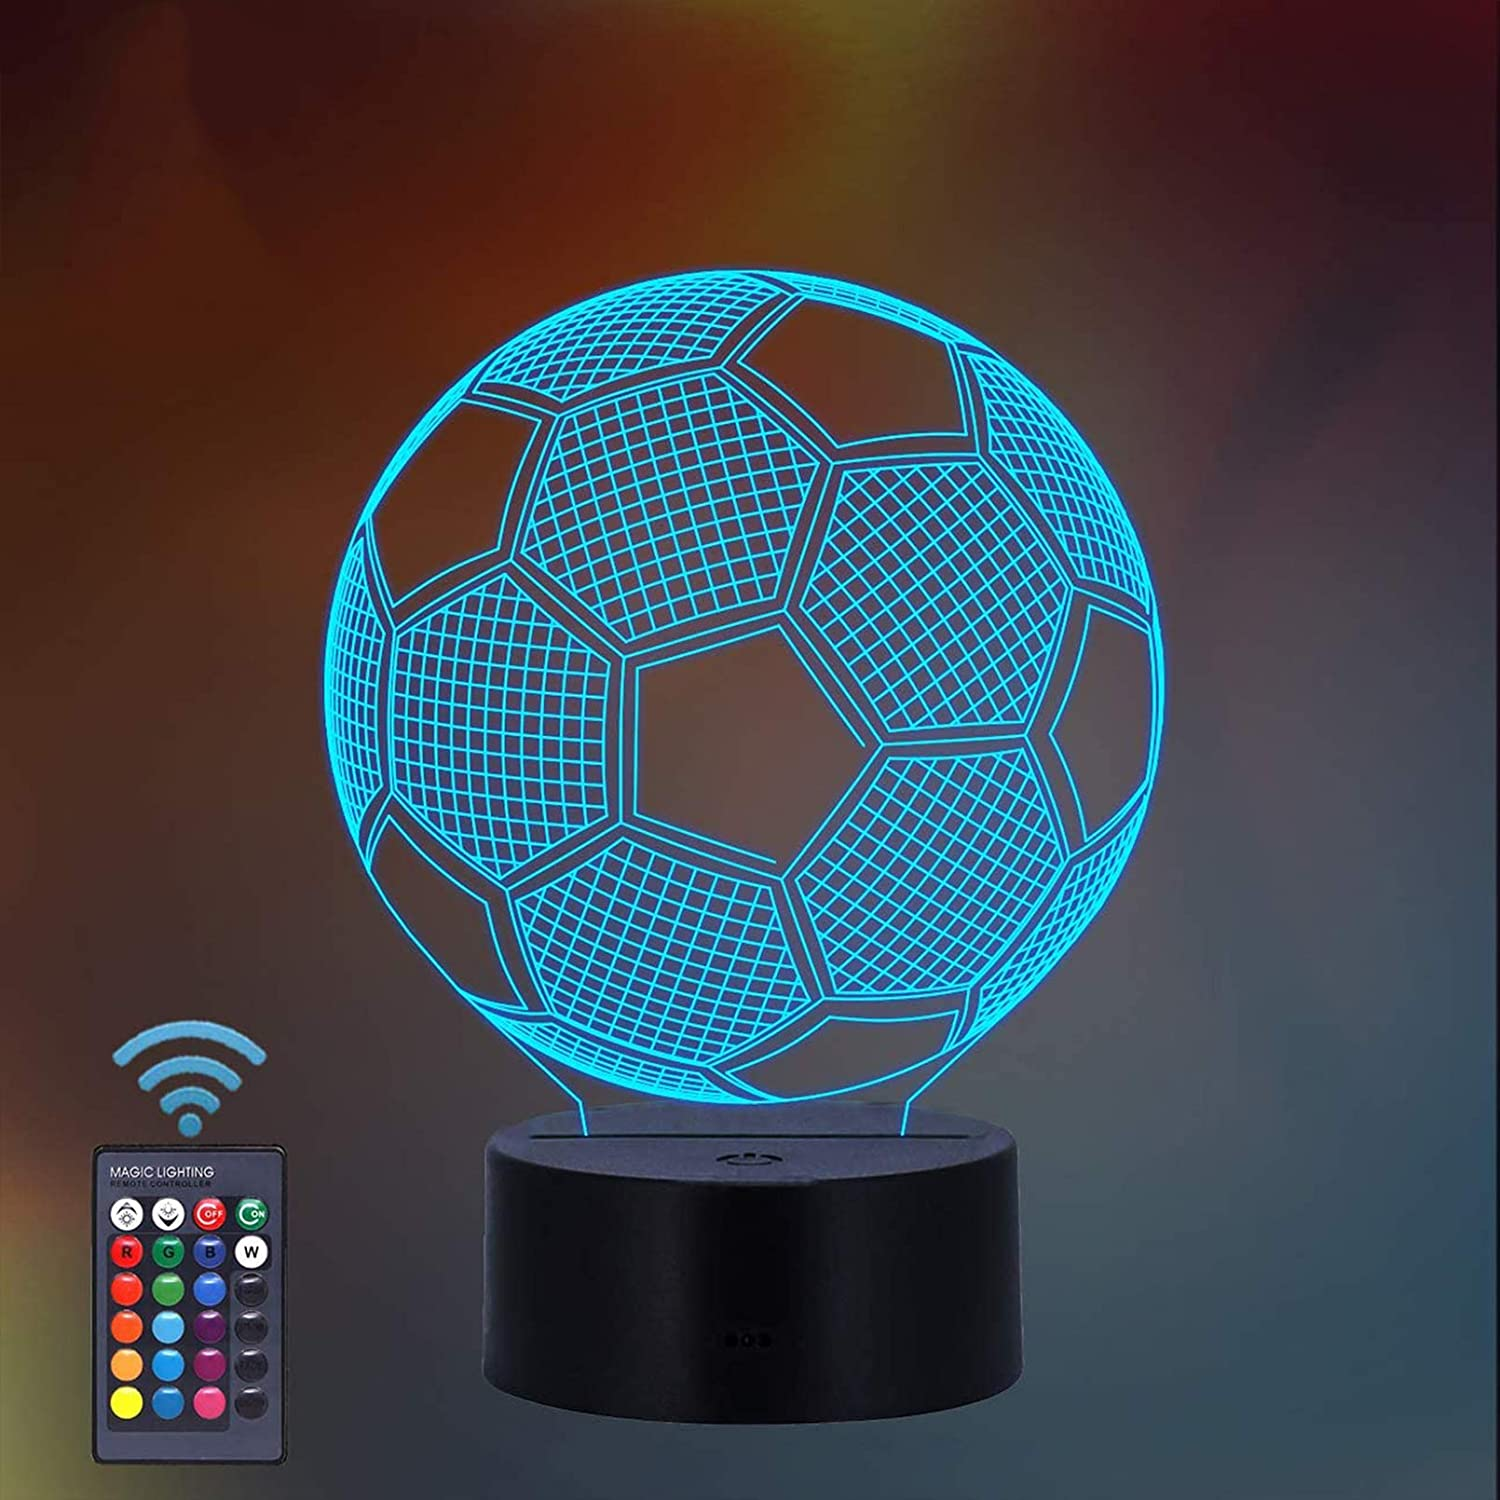 ThinkLess Soccer Night Light for Kids, 3D Illusion Lamp 16 Colors Changing Night Lamp with Remote Control, Soccer Fan Gifts for Age 2 3 4 5 6+ Years for Boy Girl Men Women